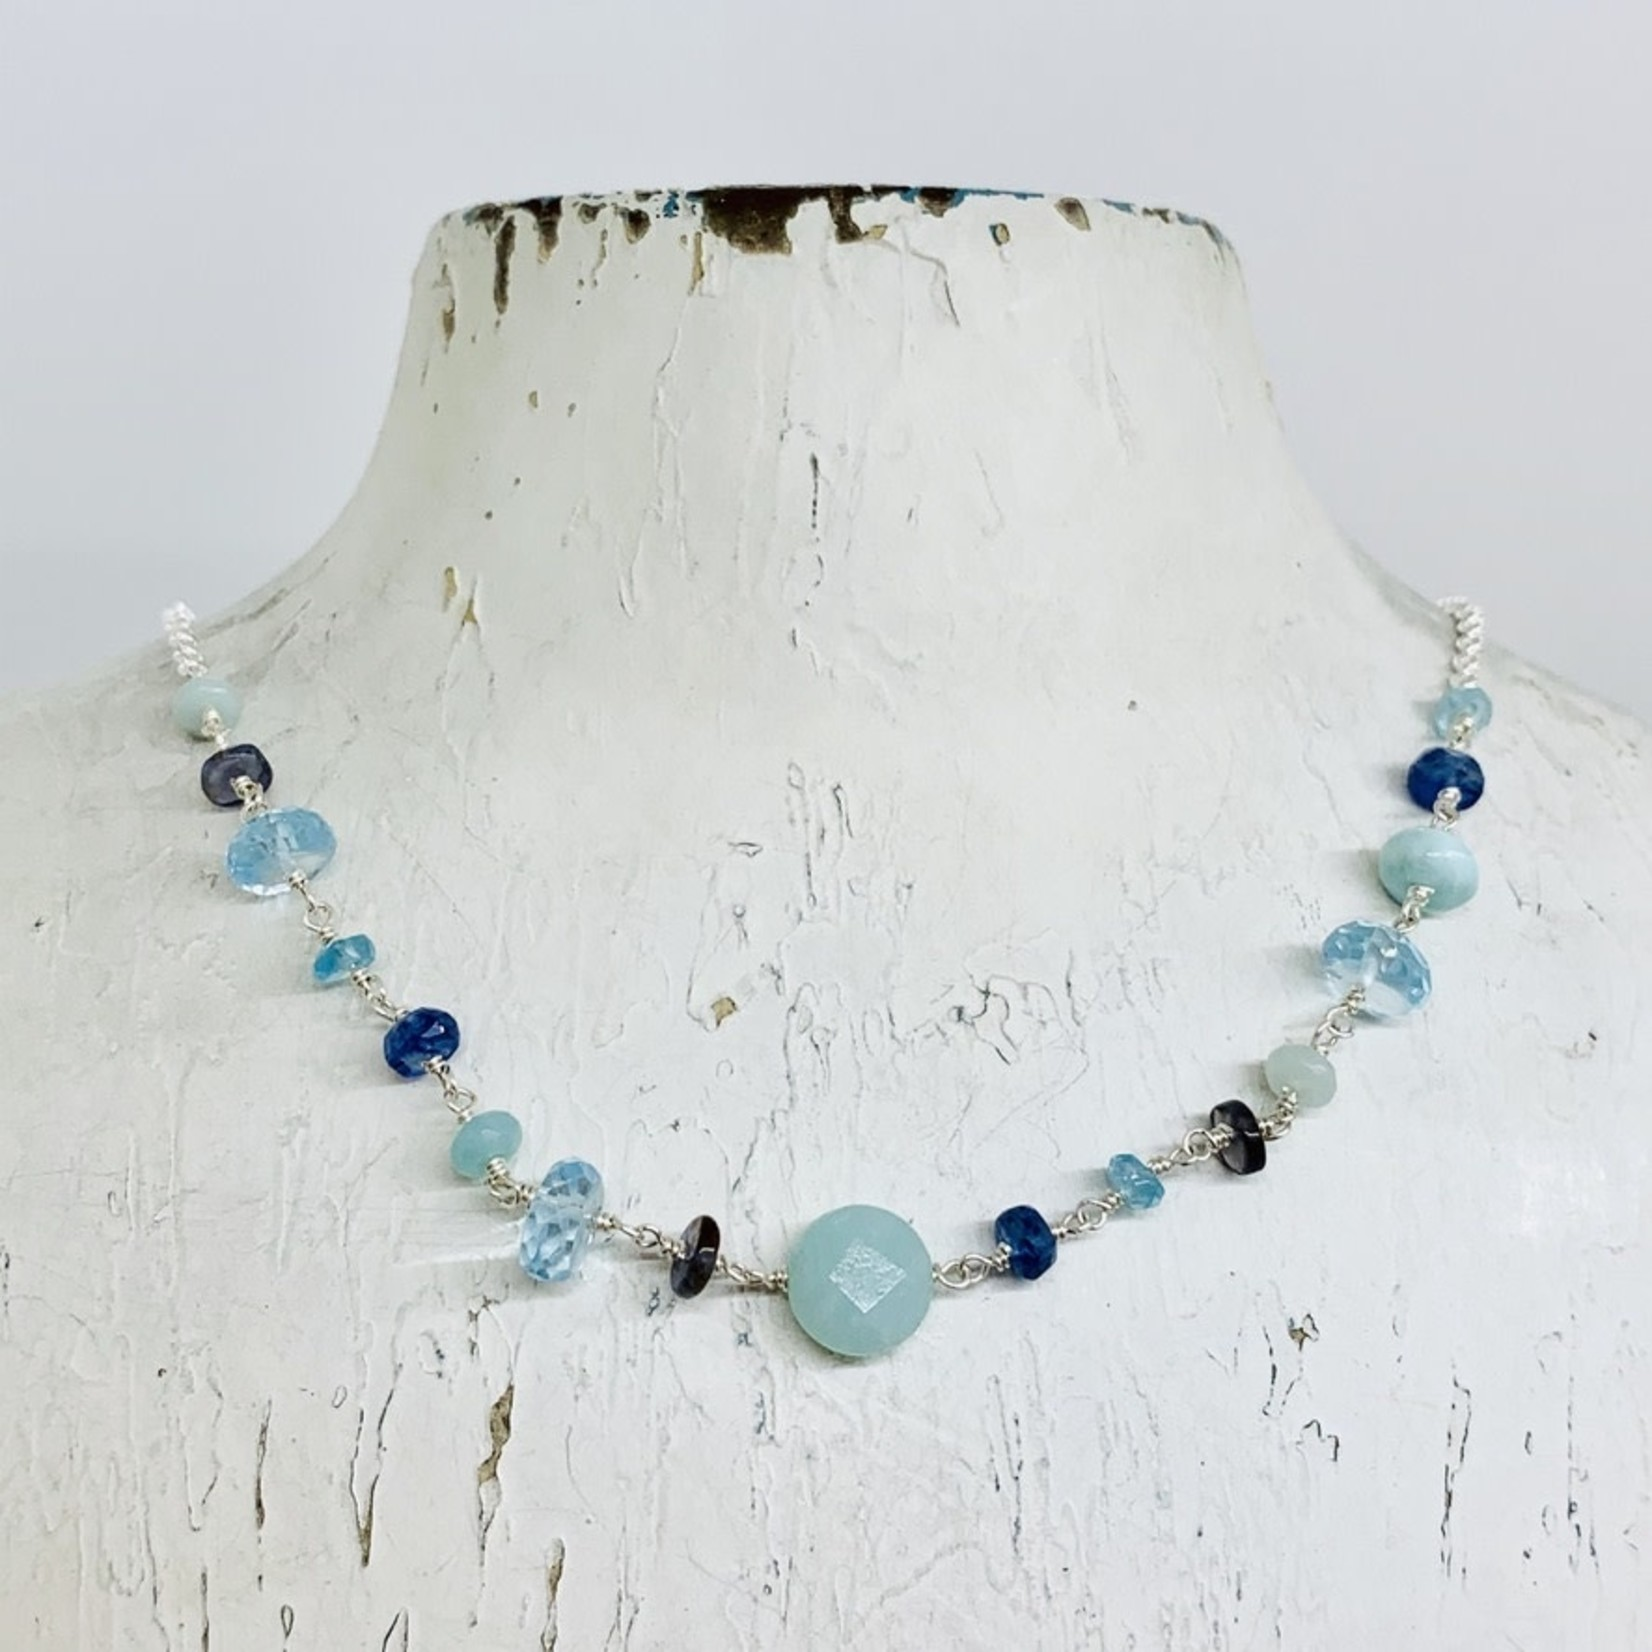 Handmade necklace with connected amazonite, apatite, blue topaz, kyanite, iolite